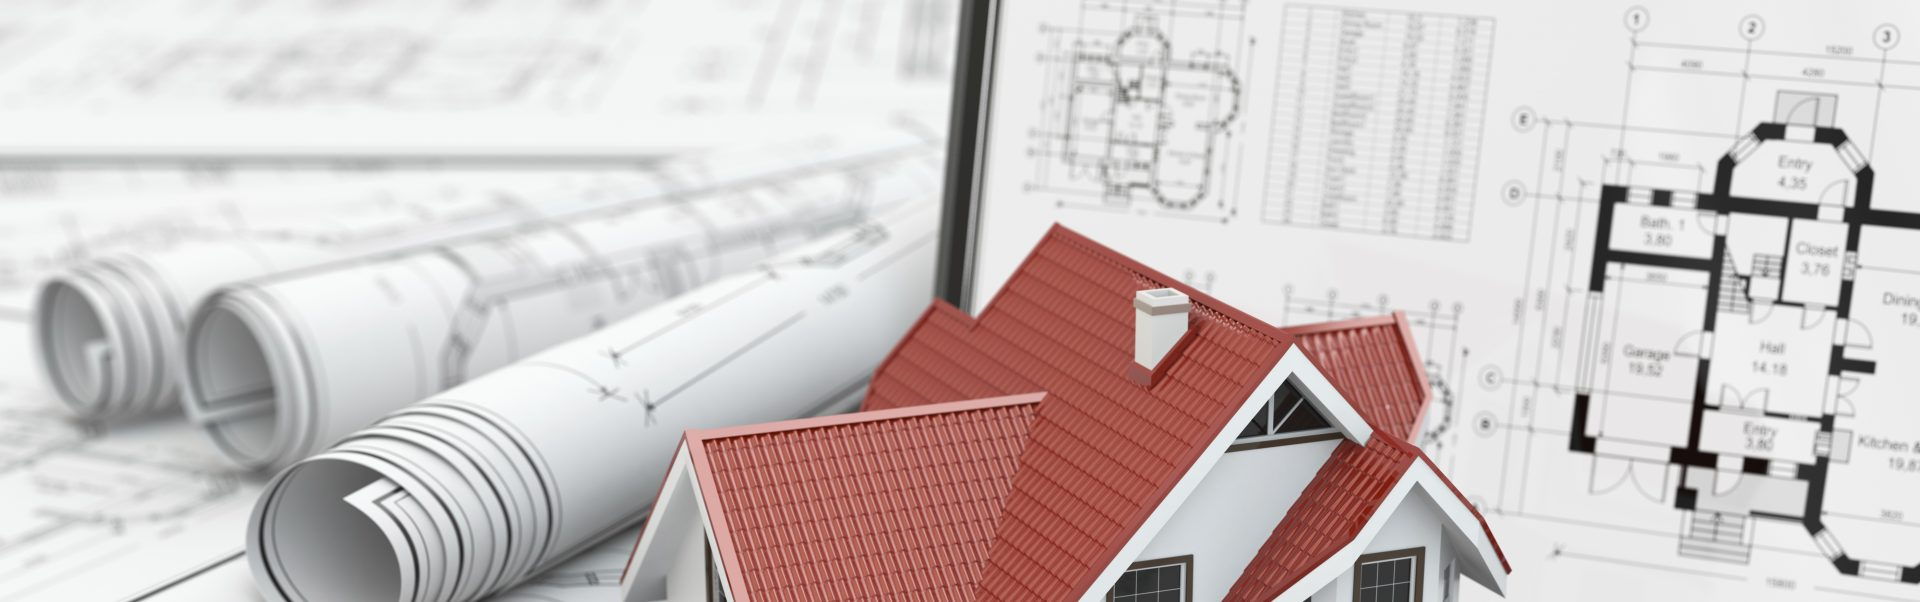 drafting and design outlook